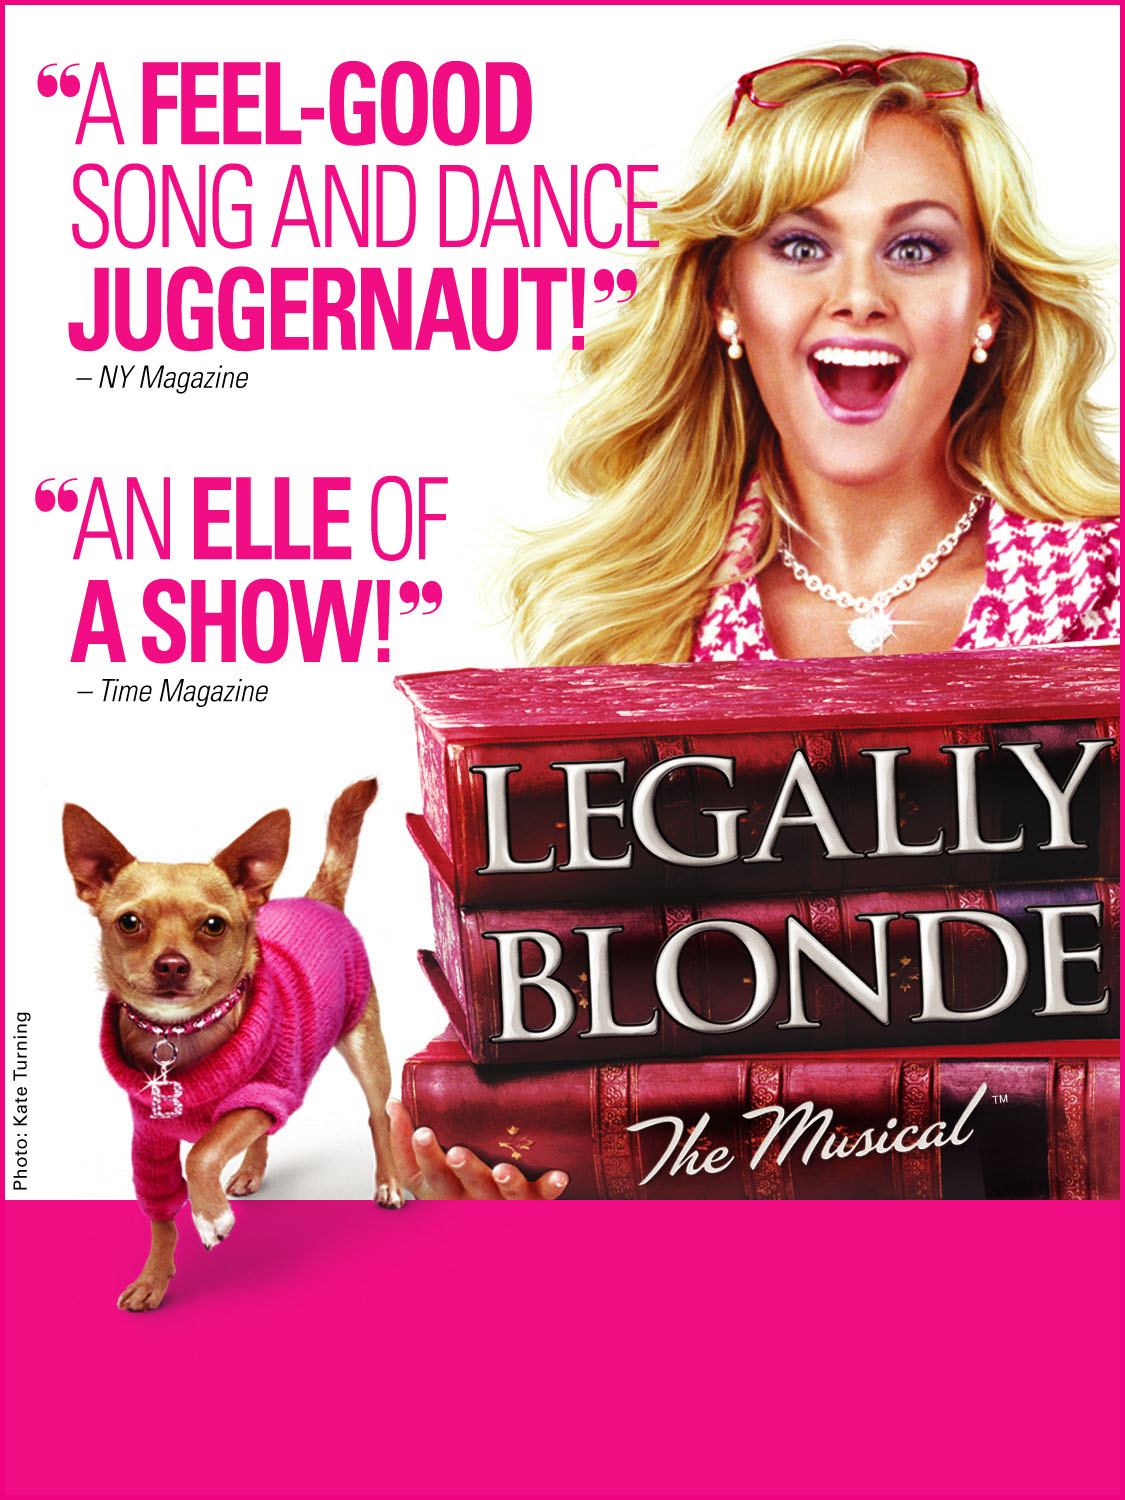 Serious from legally blonde other adult videos